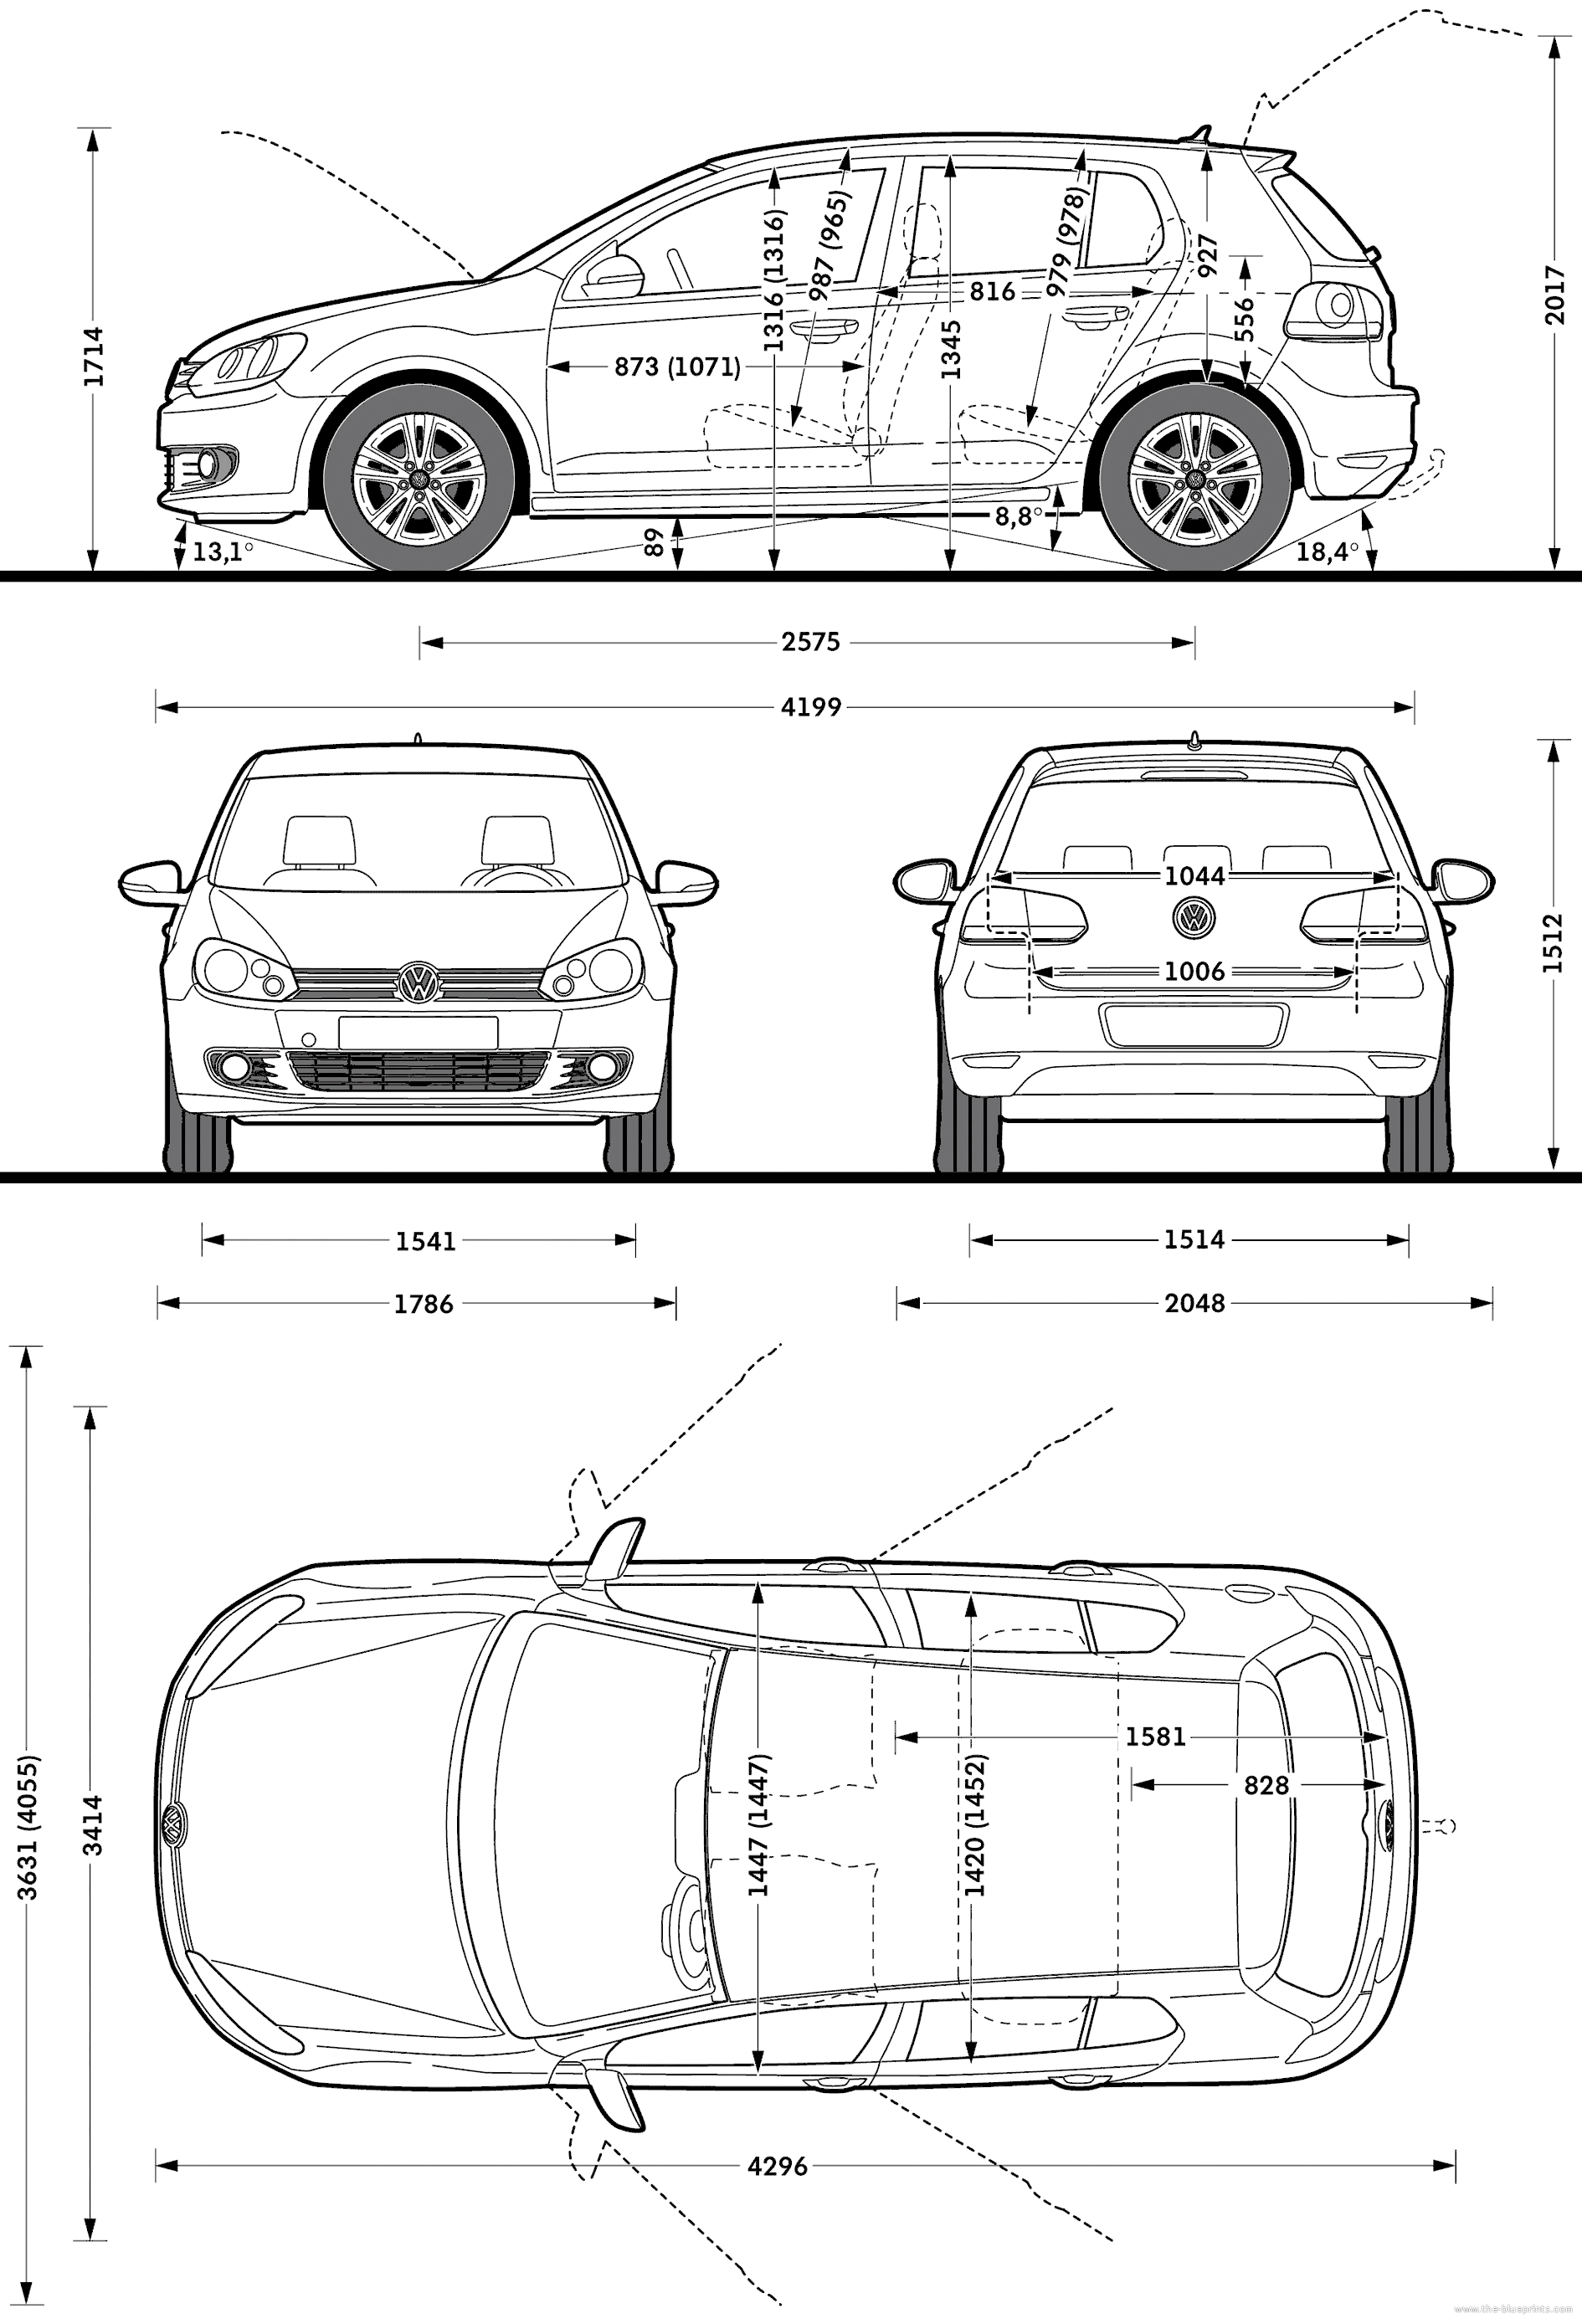 Dimensions of vw golf for Blueprint sizes